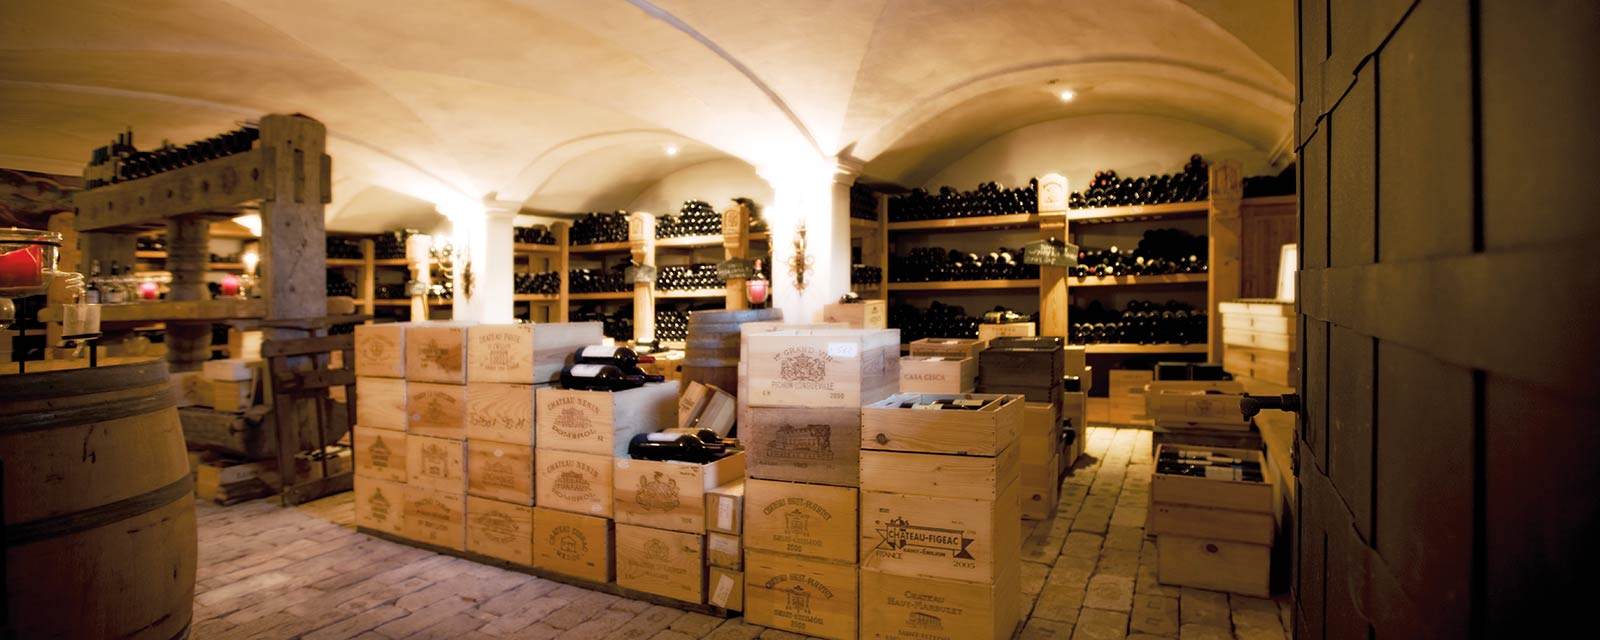 Wine cellar at the Burg Vital Resort